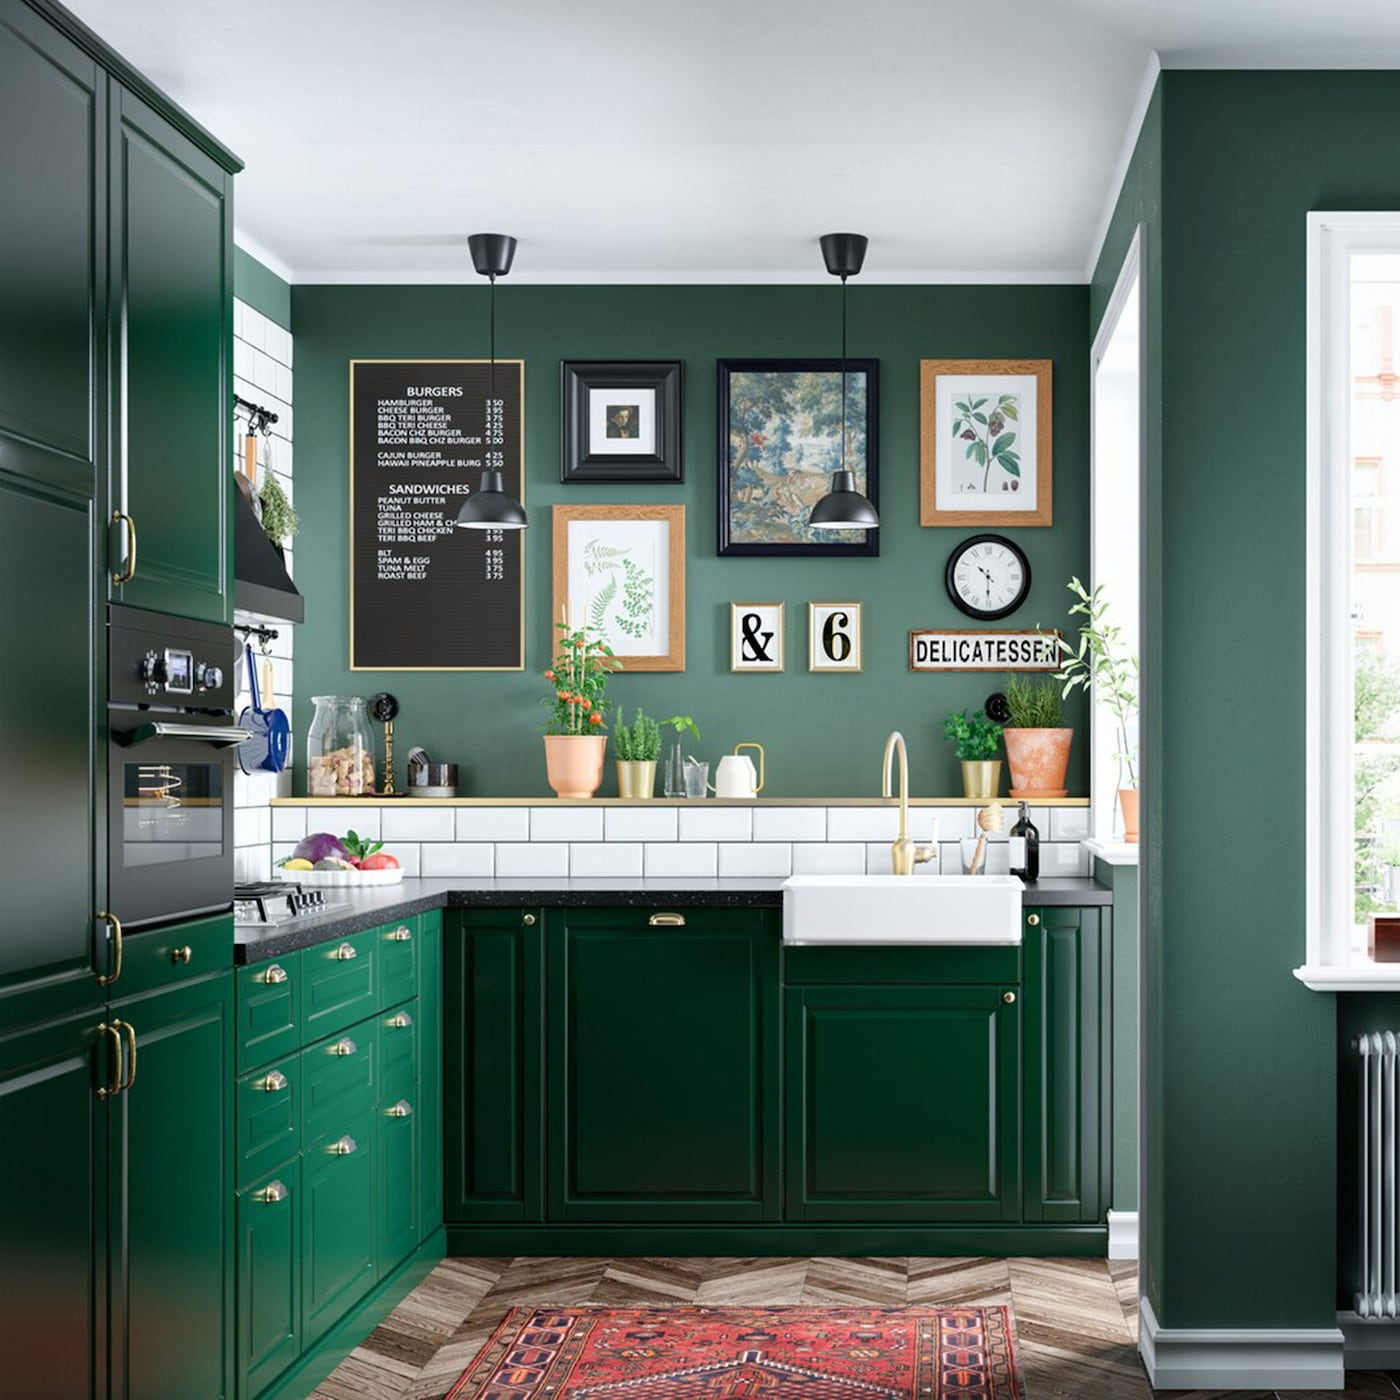 latest ikea small kitchen designs | A green and fresh BODBYN kitchen - IKEA